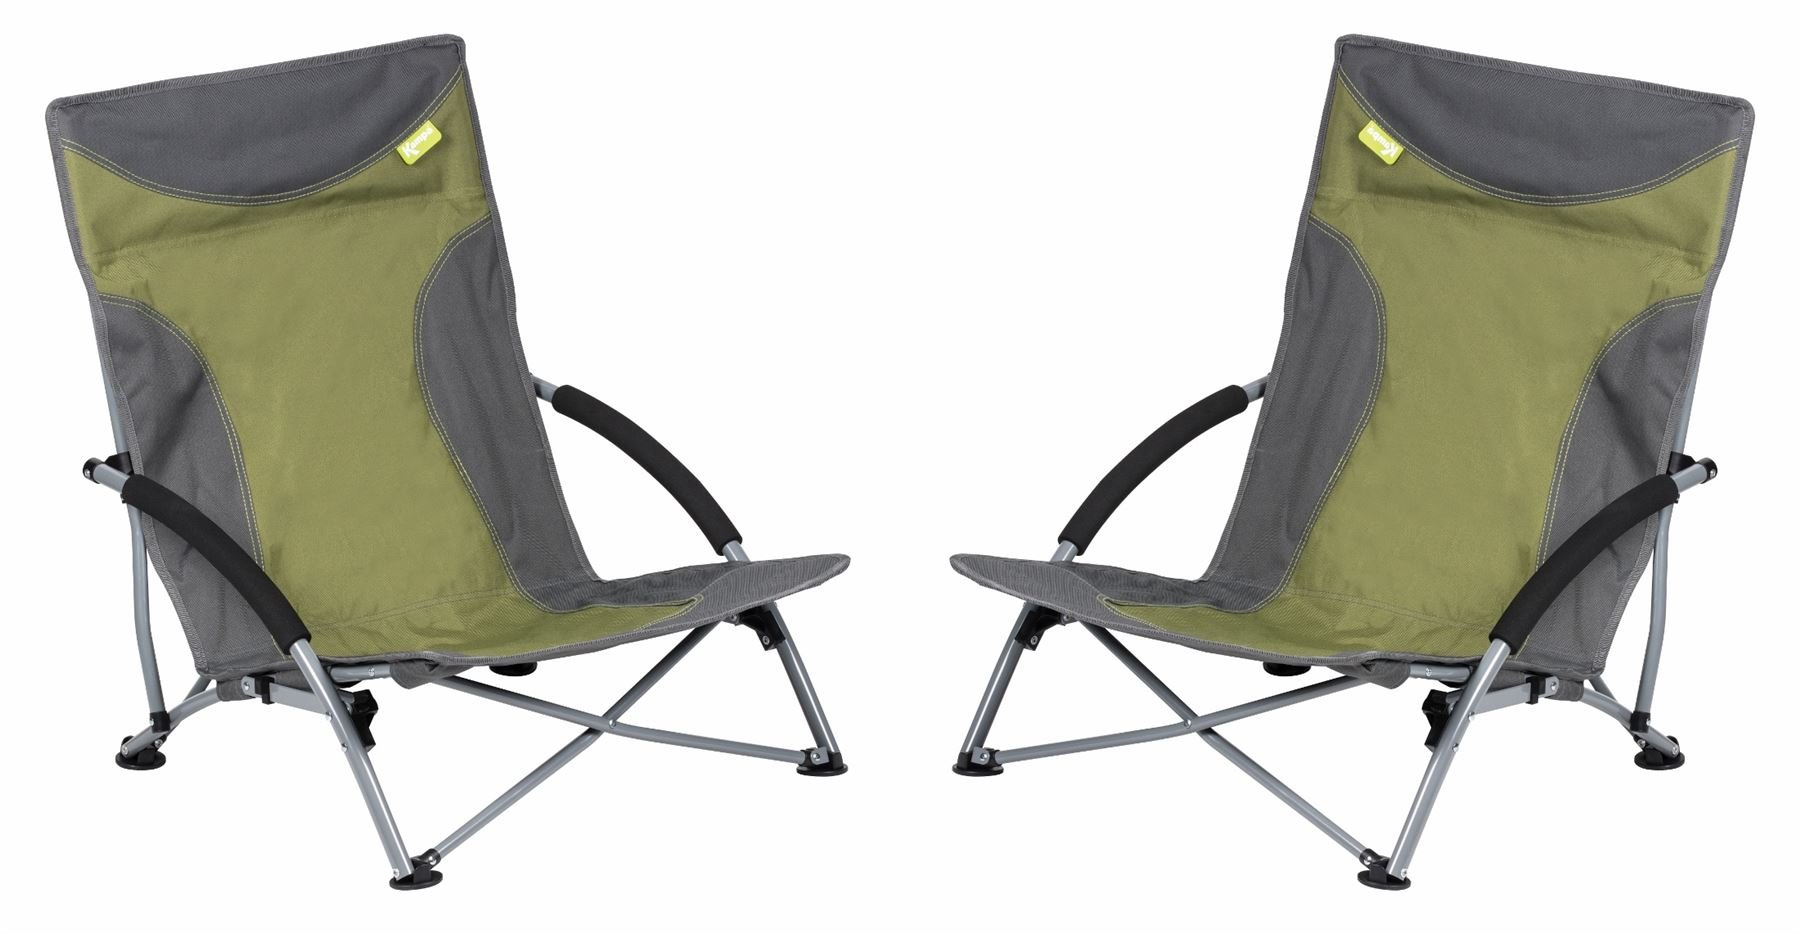 Kampa Sandy High Back - Low Beach Chair (Green, 7 Chairs)